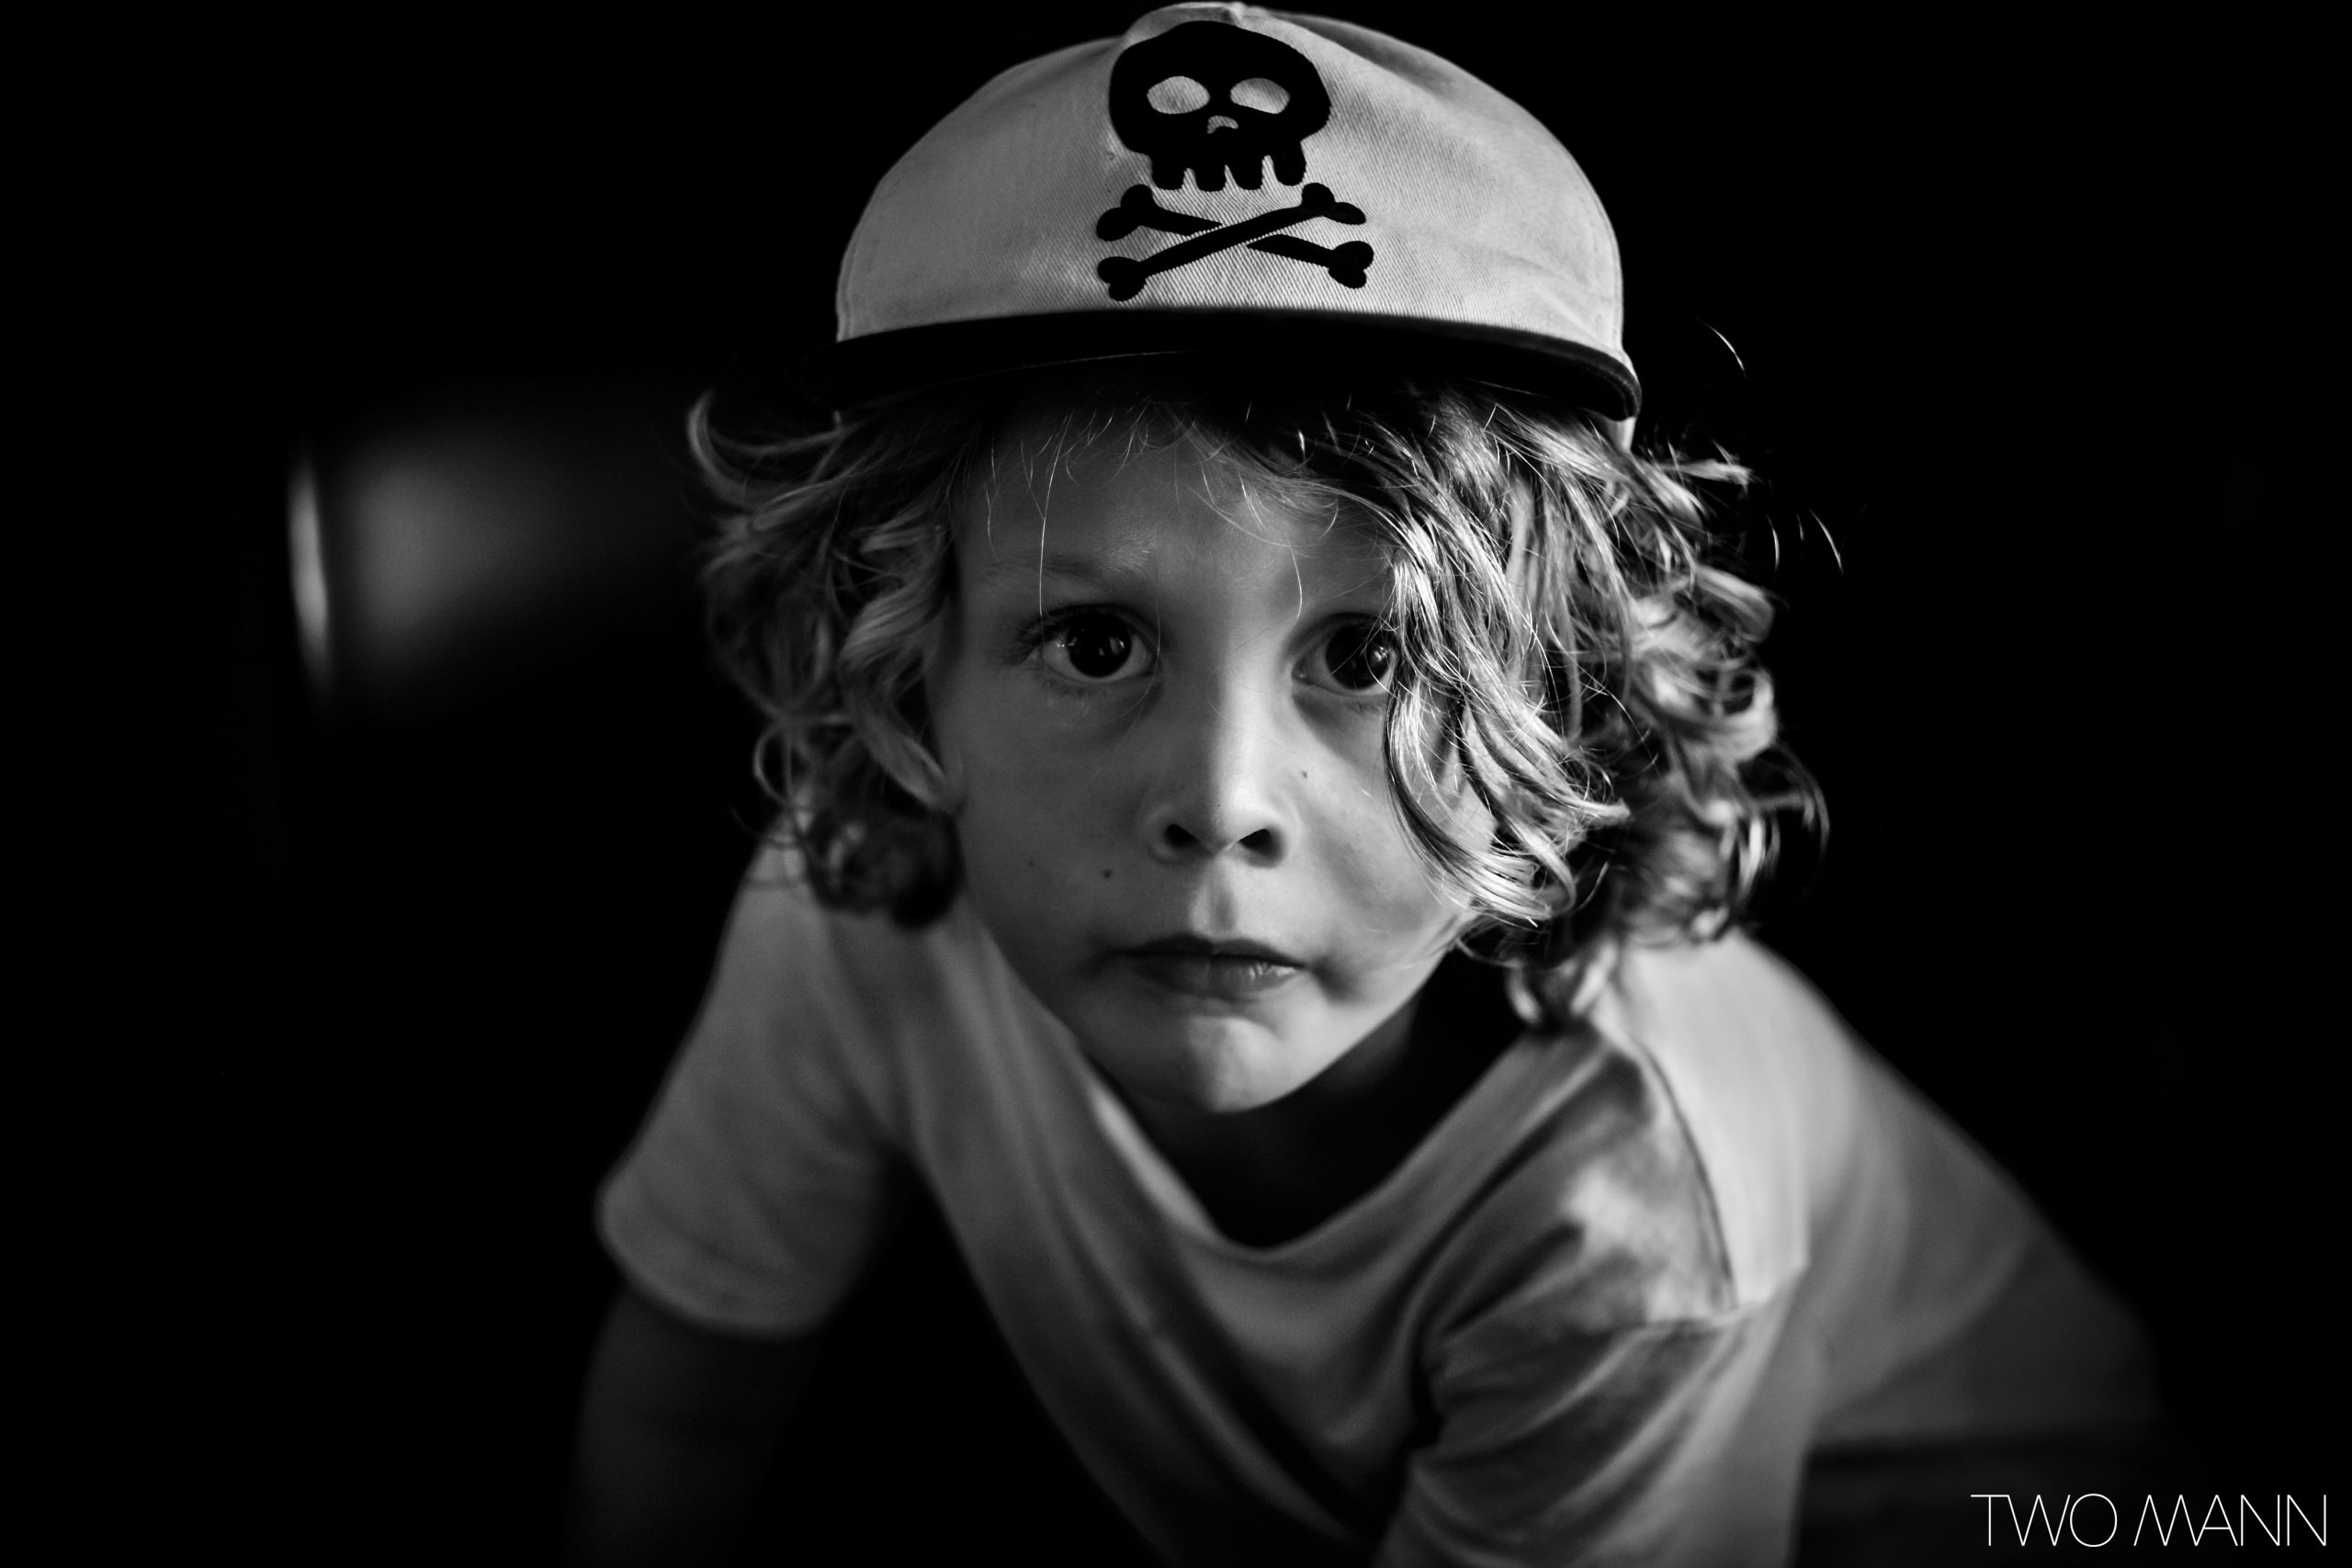 Young boy with curly blonde hair with skull and crossbones hat